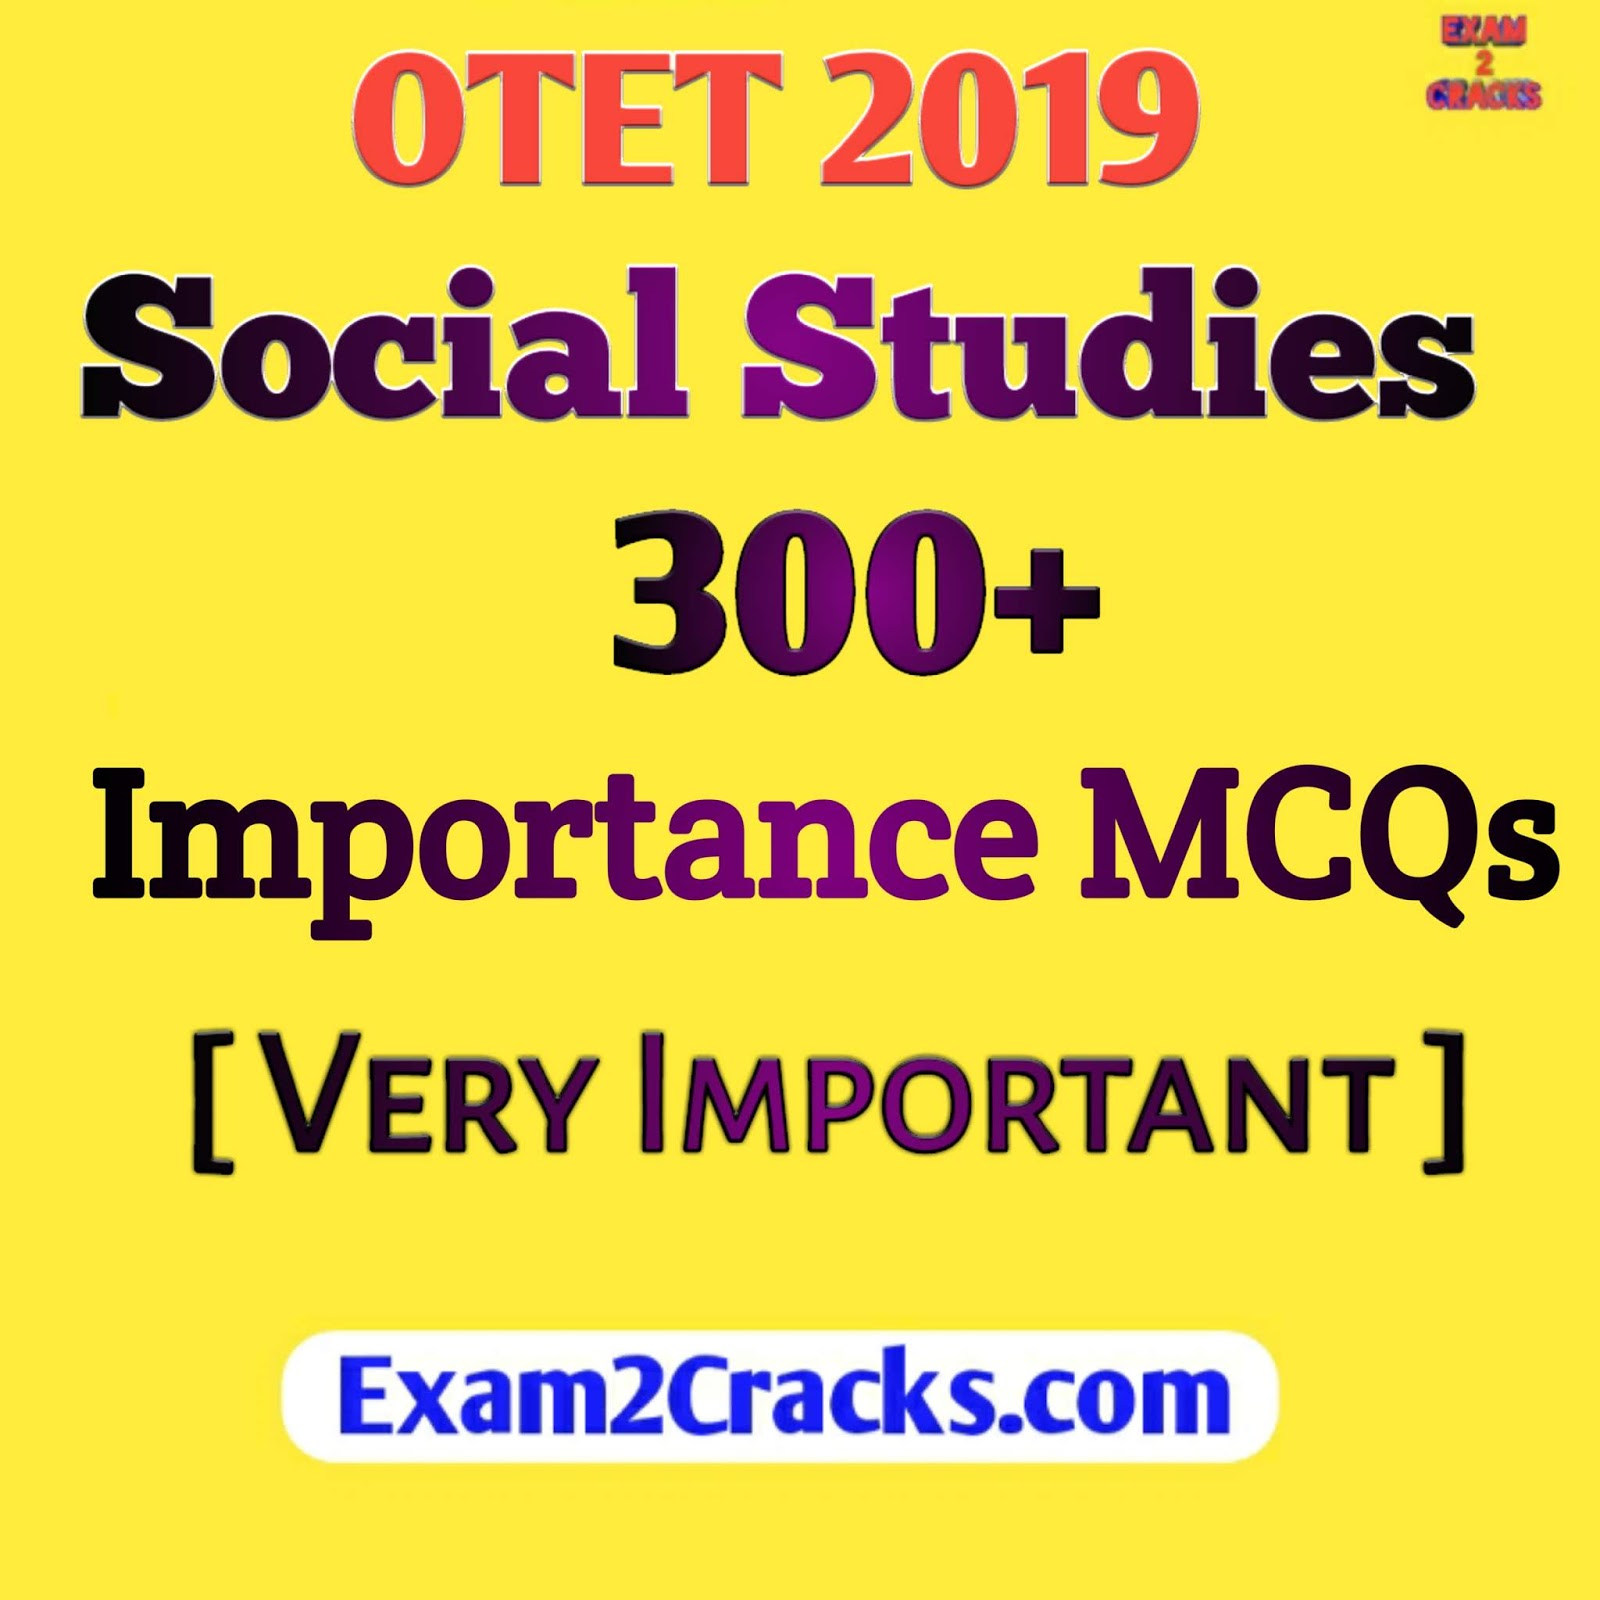 Social Studies Important Questions For OTET 2019 - Exam2Cracks